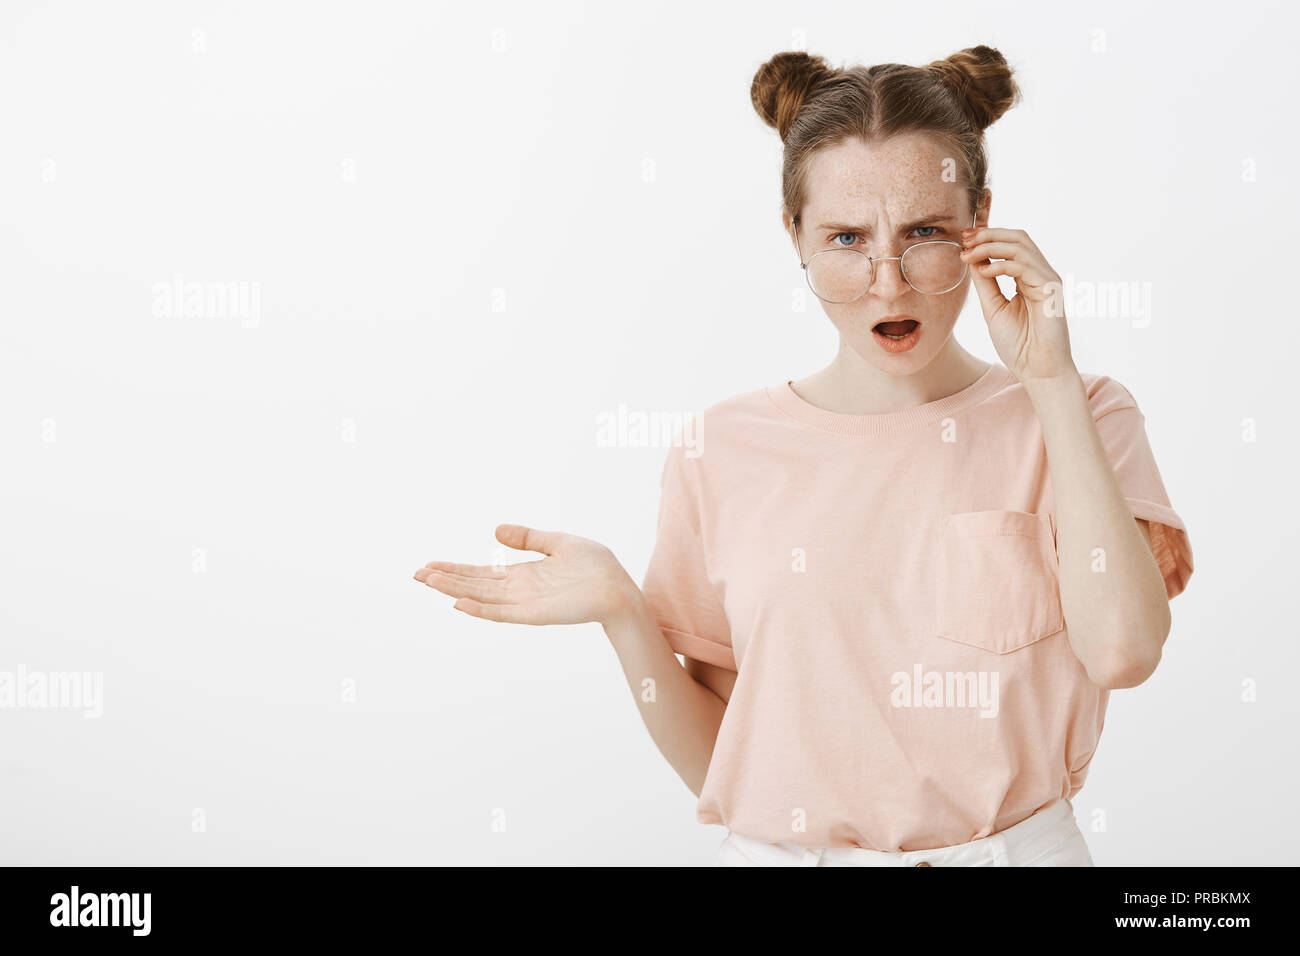 Girl hearing nonsense, having argument, being displeased what she hears. Intense puzzled girlfriend in trendy clothes, taking off eyewear, gesturing lifted palm in clueless expression, confused - Stock Image